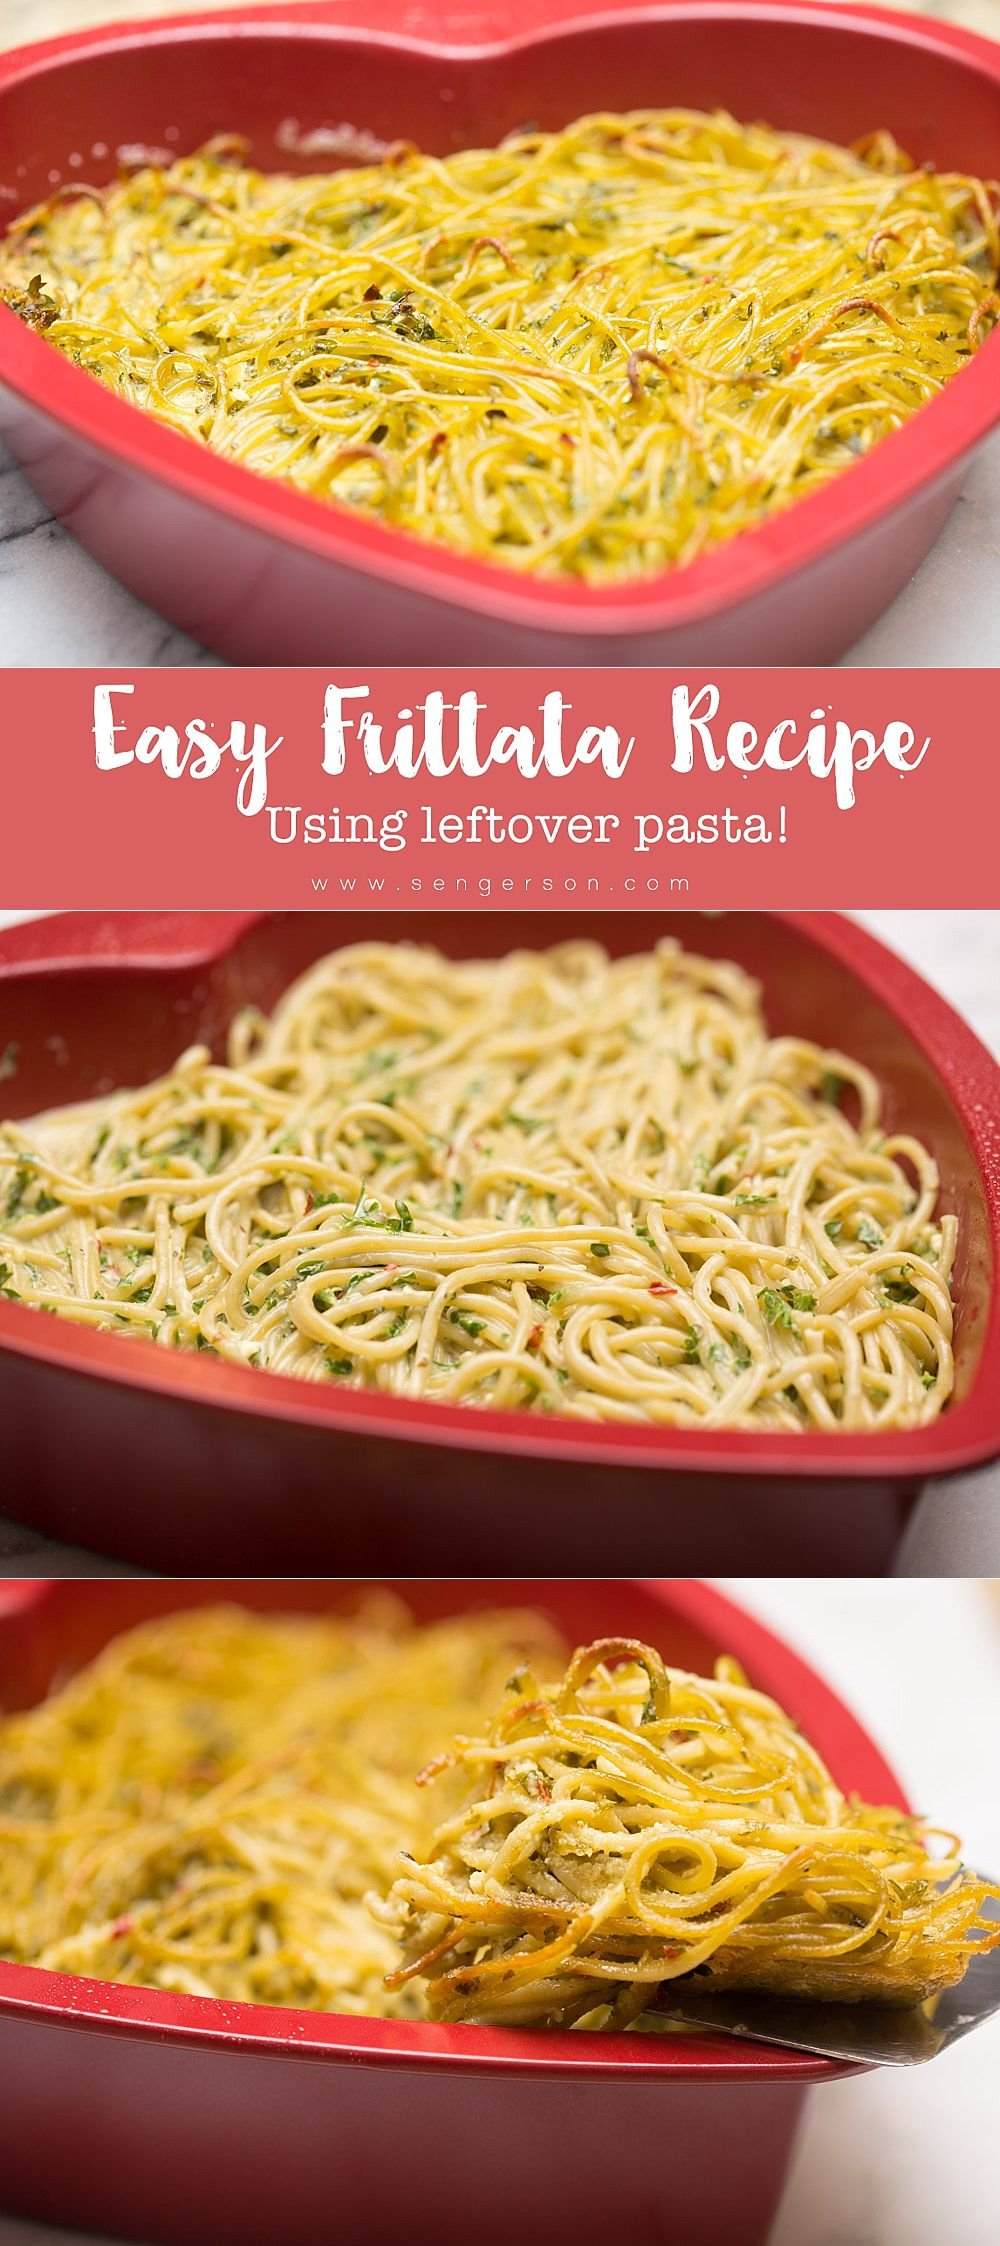 leftover pasta frittata recipe that is easy to make!